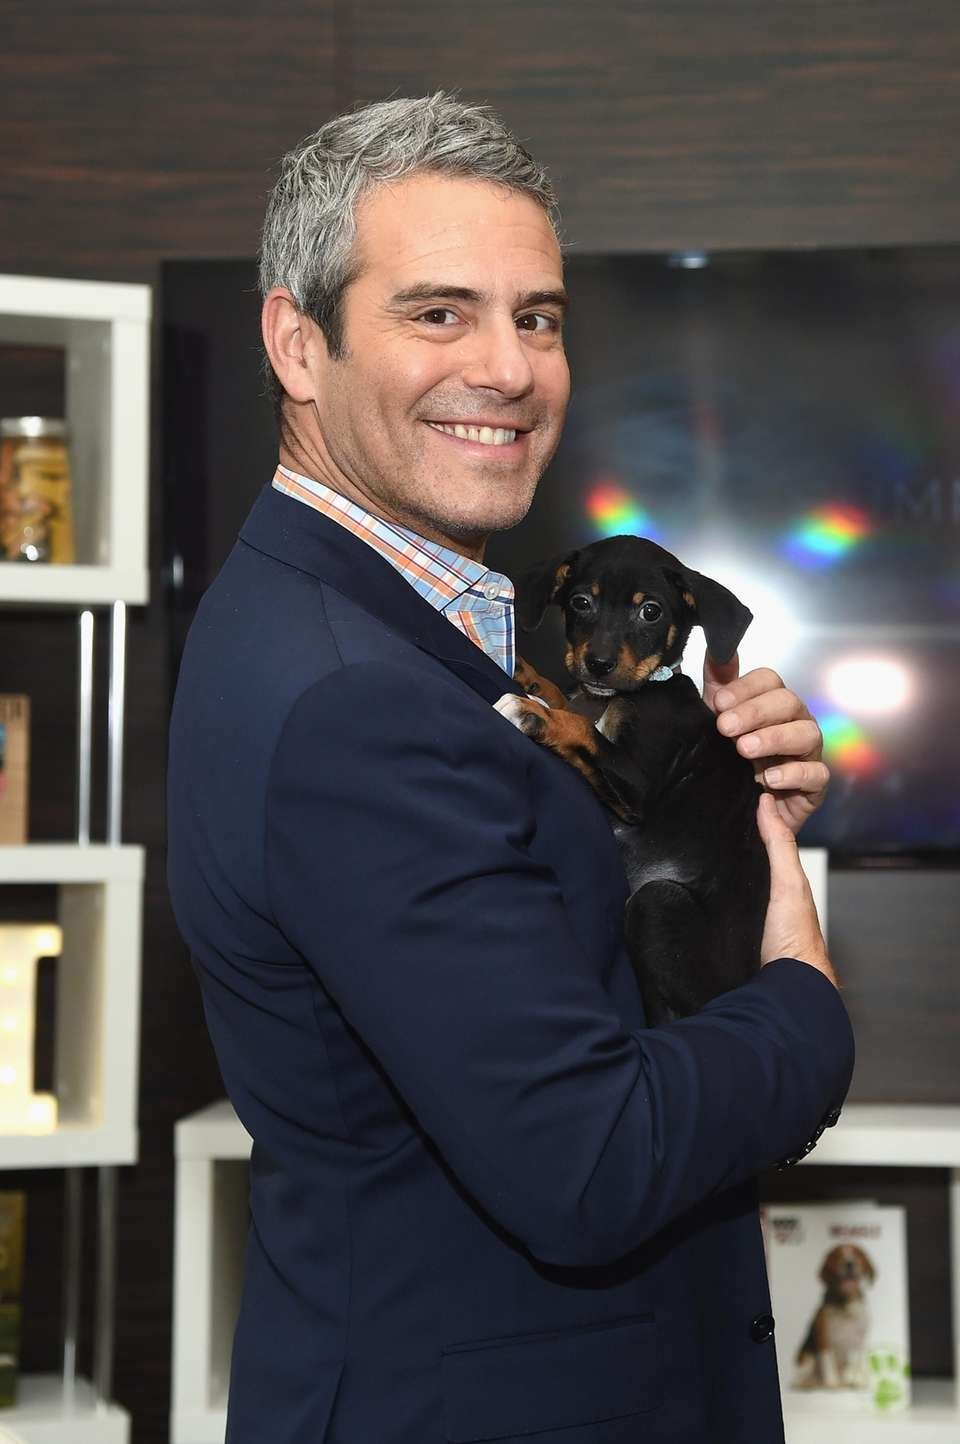 Andy Cohen poses with a puppy at a